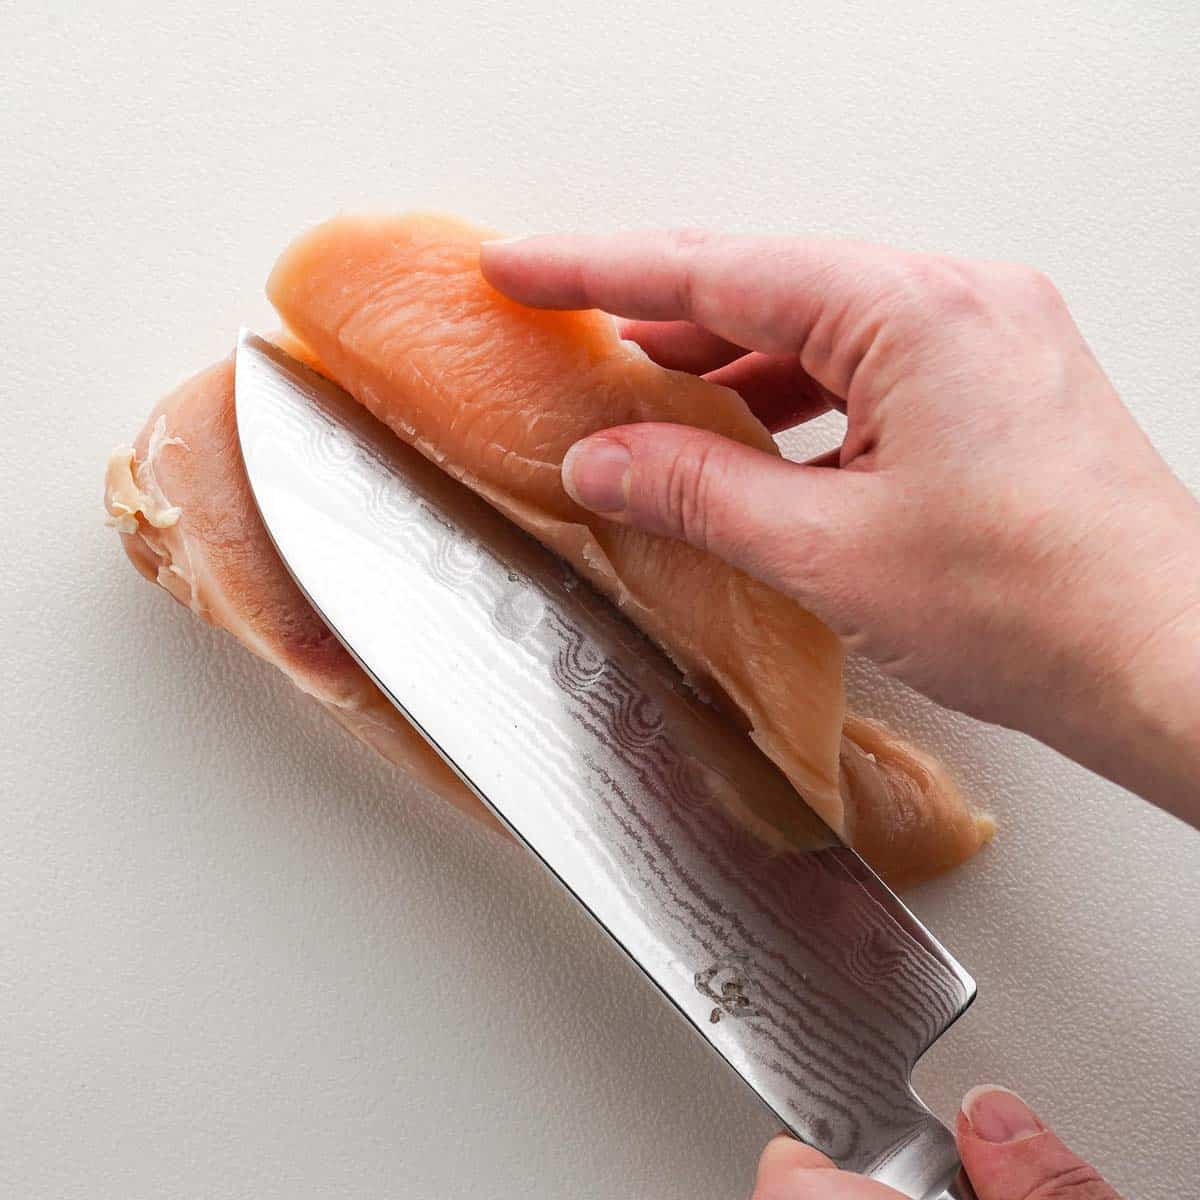 Hand pulling slice of chicken breast back as knife cuts through it